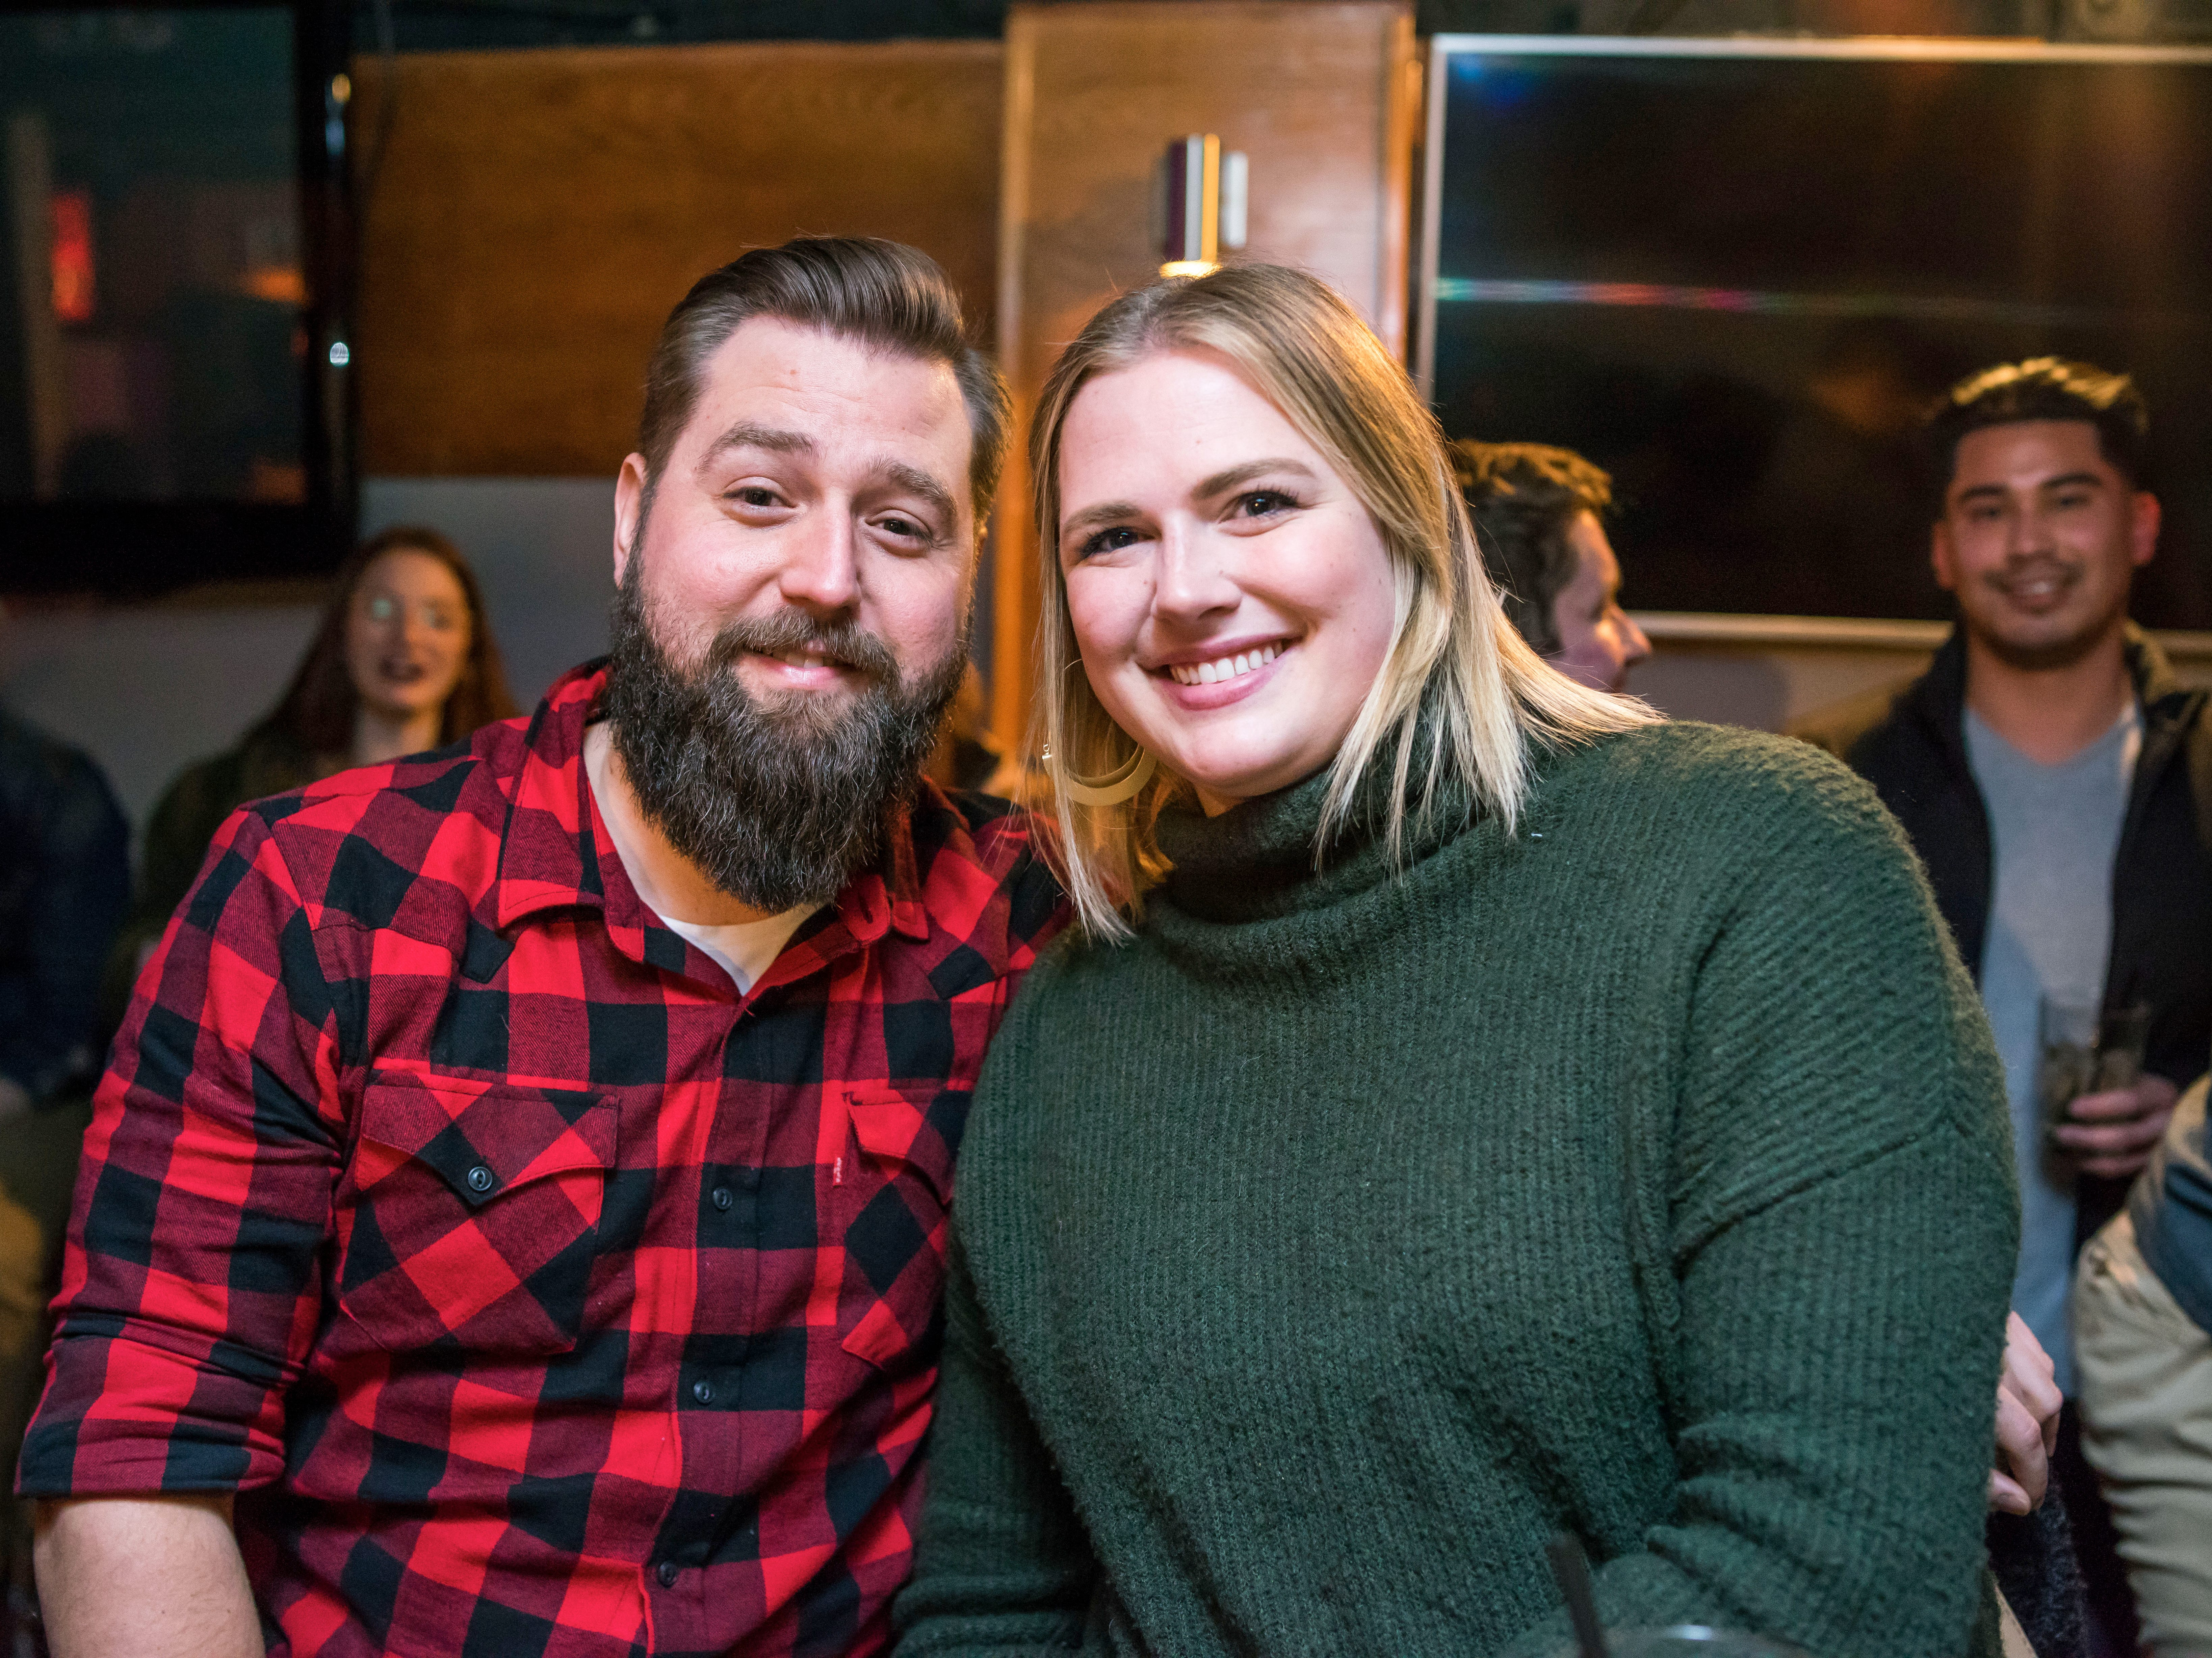 Lindsey Lamair, 29, Riley Hawbauer, 34, having a fun night,Friday, Dec. 21, at the Bomb Shelter Comedy Showcase, hosted by the Beechwood.